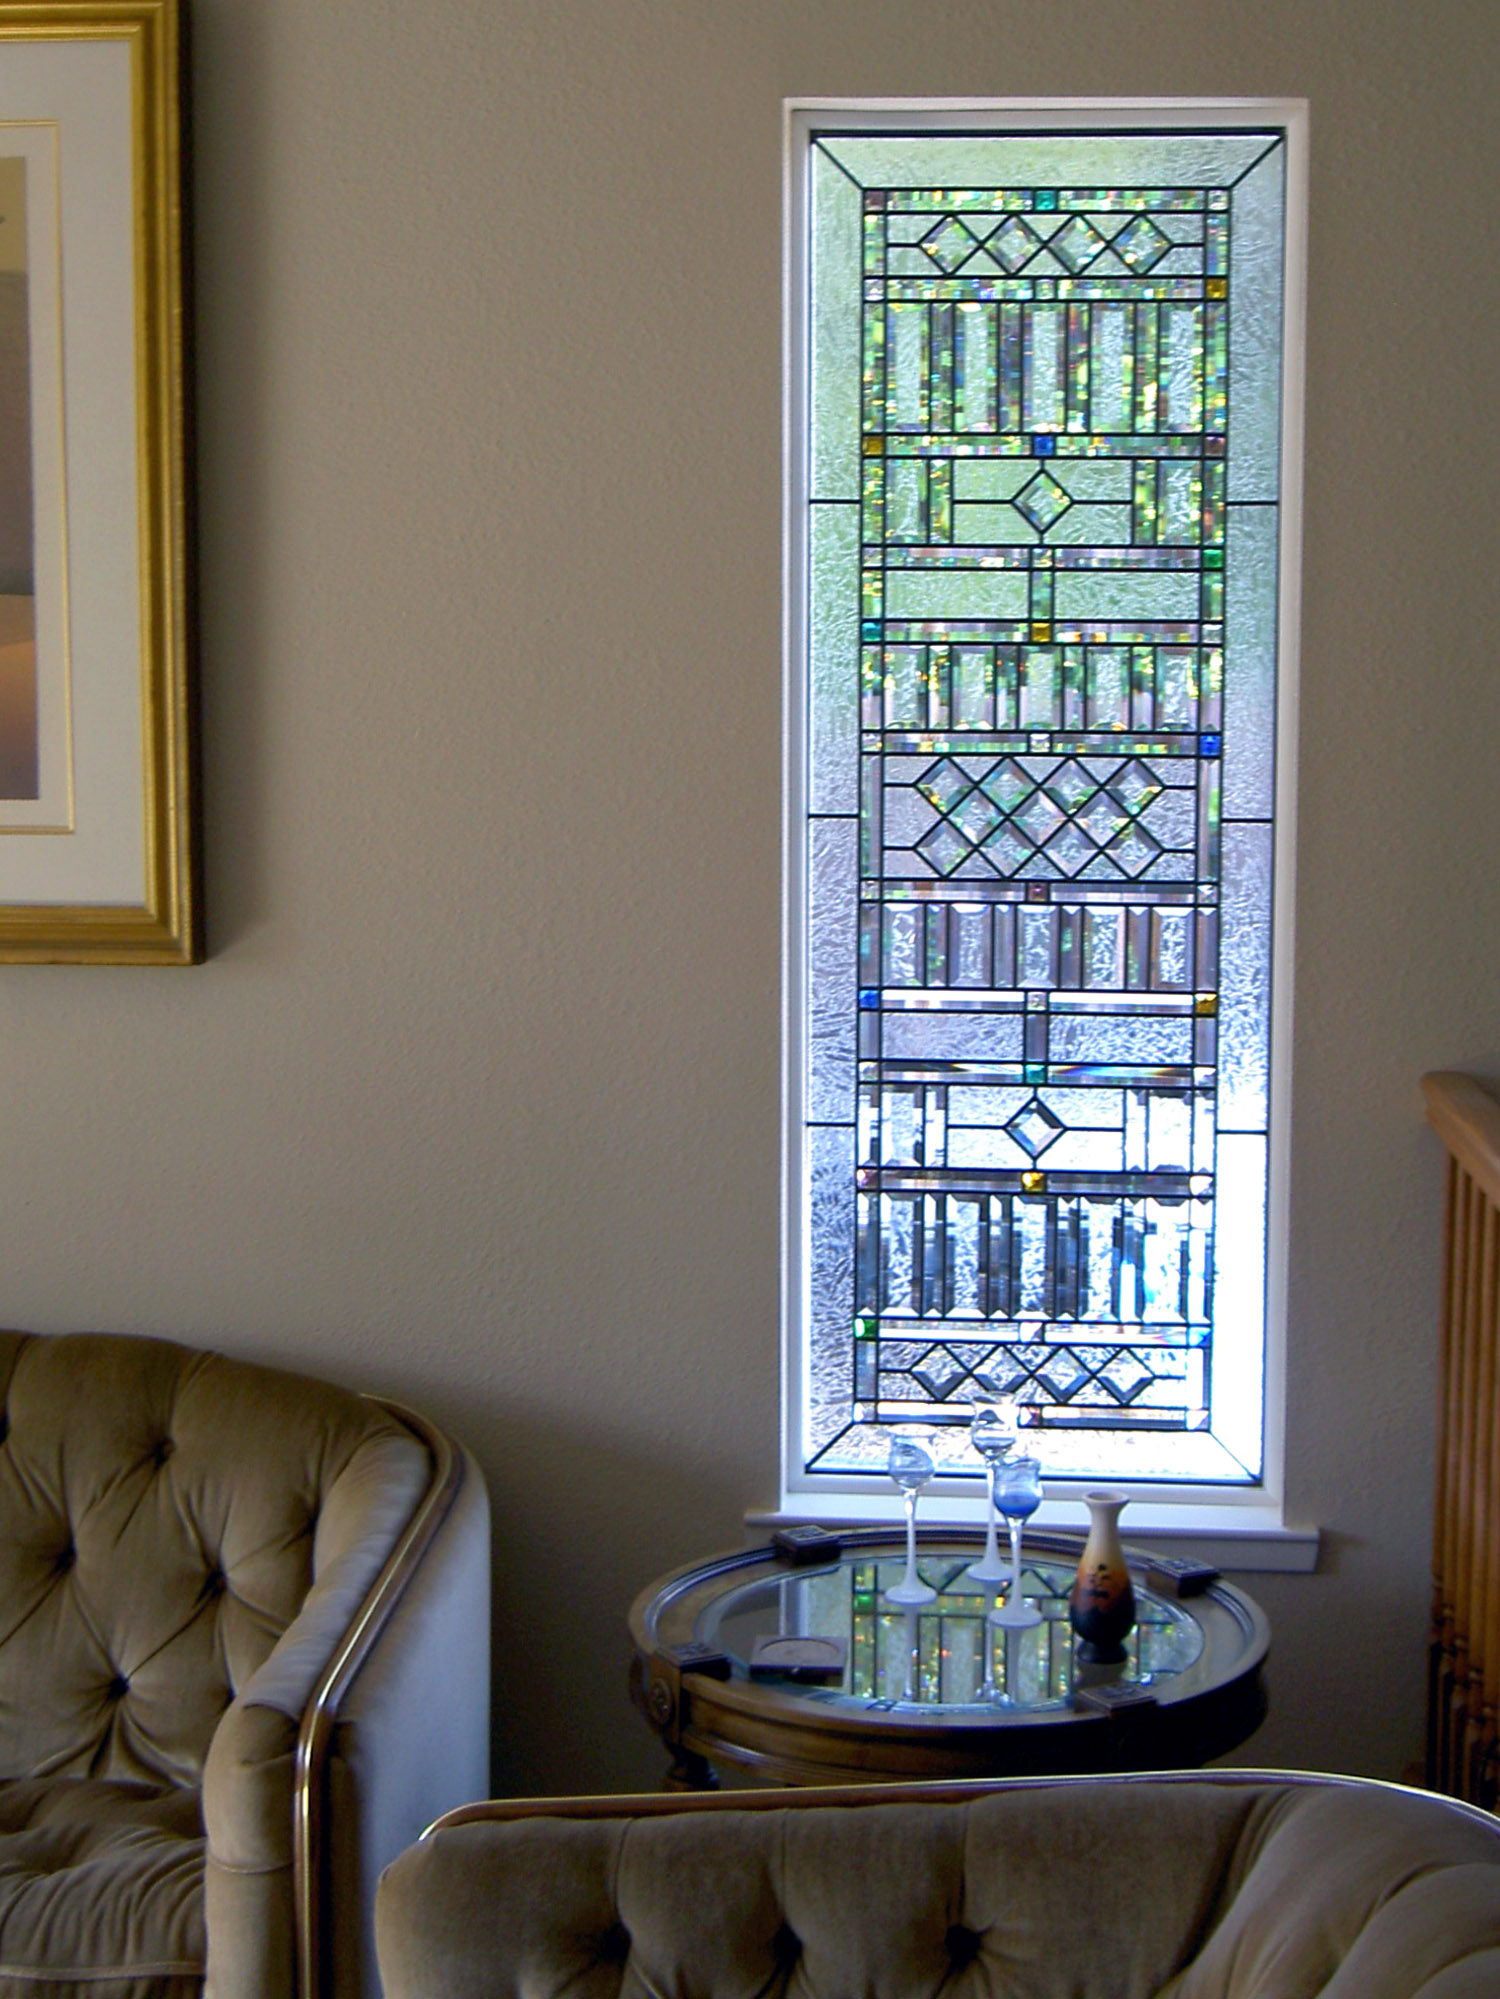 art deco ornate clear texture double glue chip pencil bevel colored glass beveled square leaded glass stained glass window palo alto atherton california san francisco.jpg